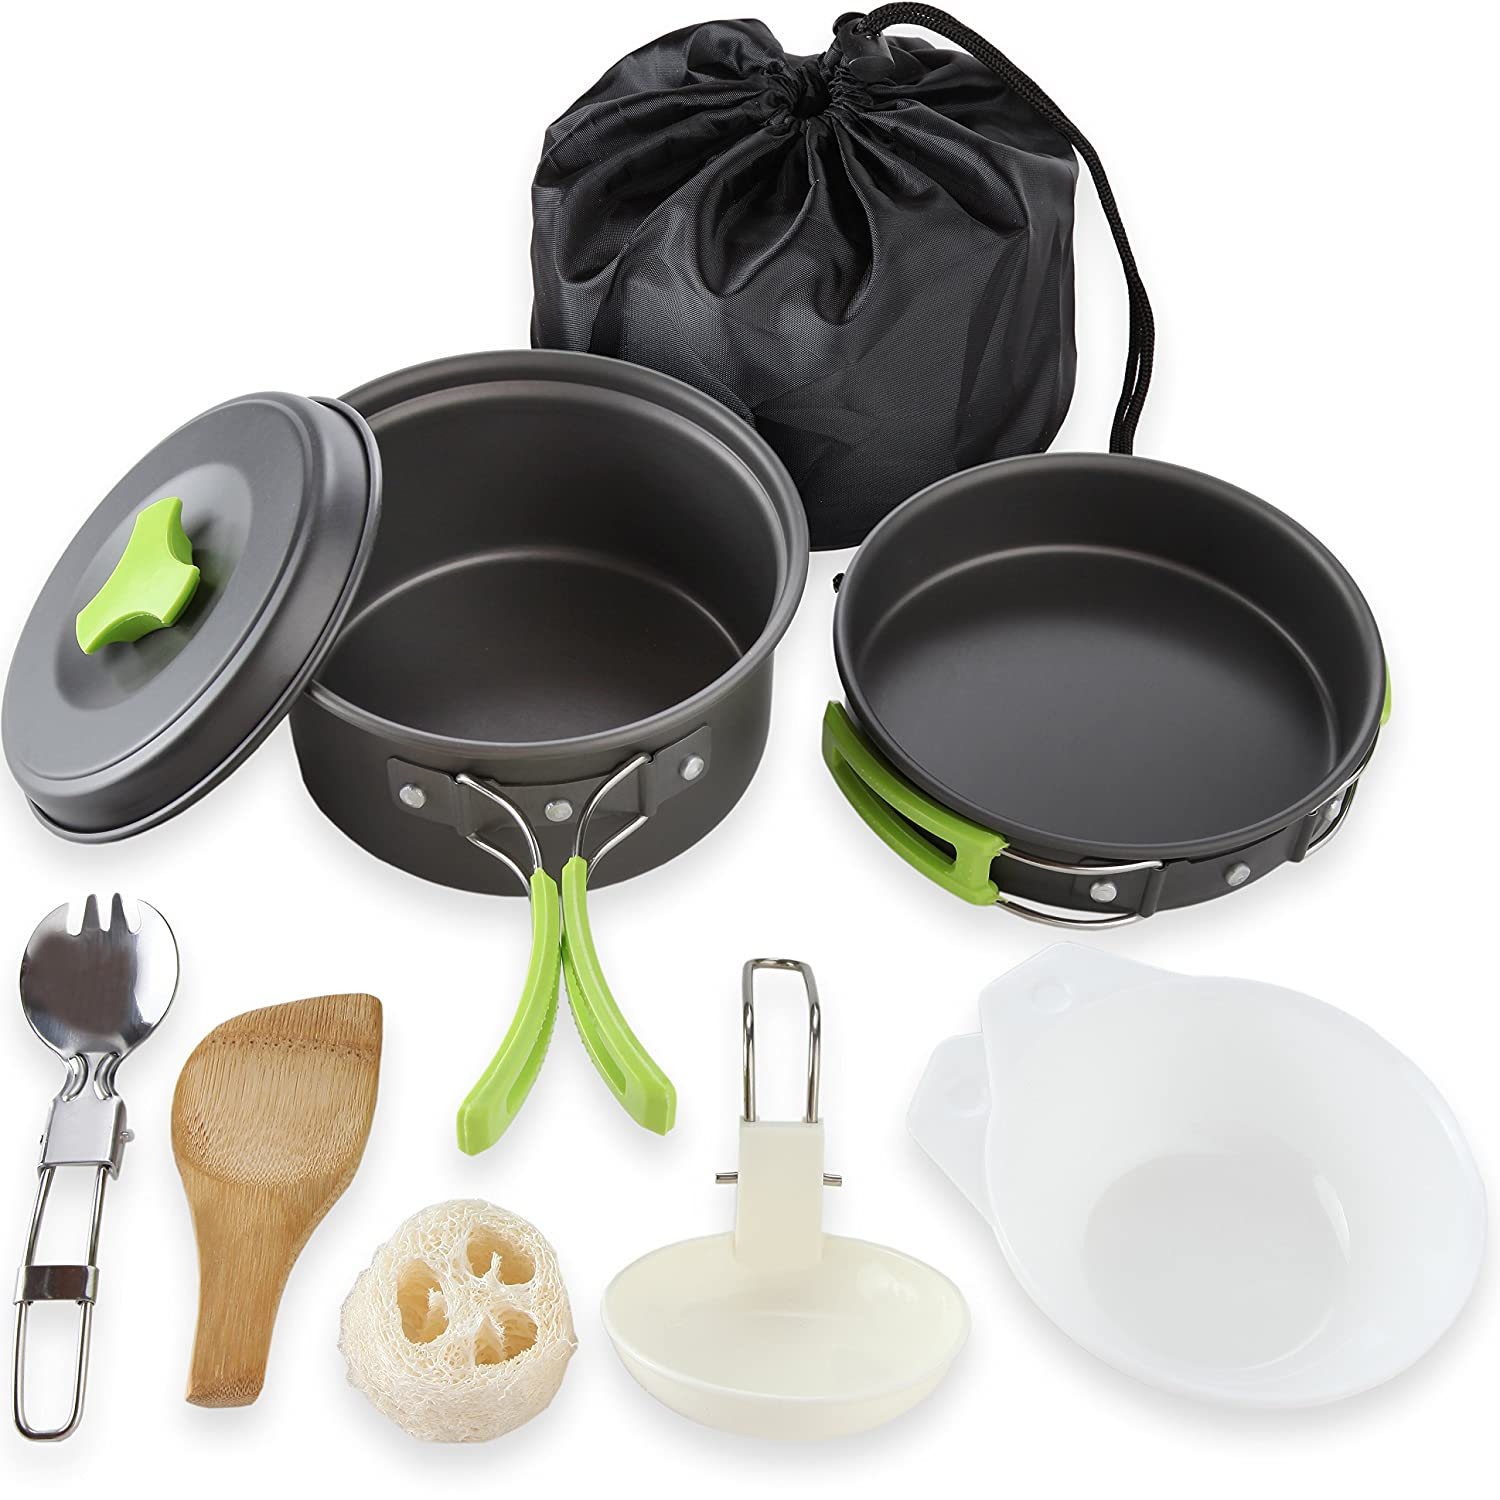 Amazon.com : Camping Cookware Mess Kit Backpacking Gear & Hiking ...